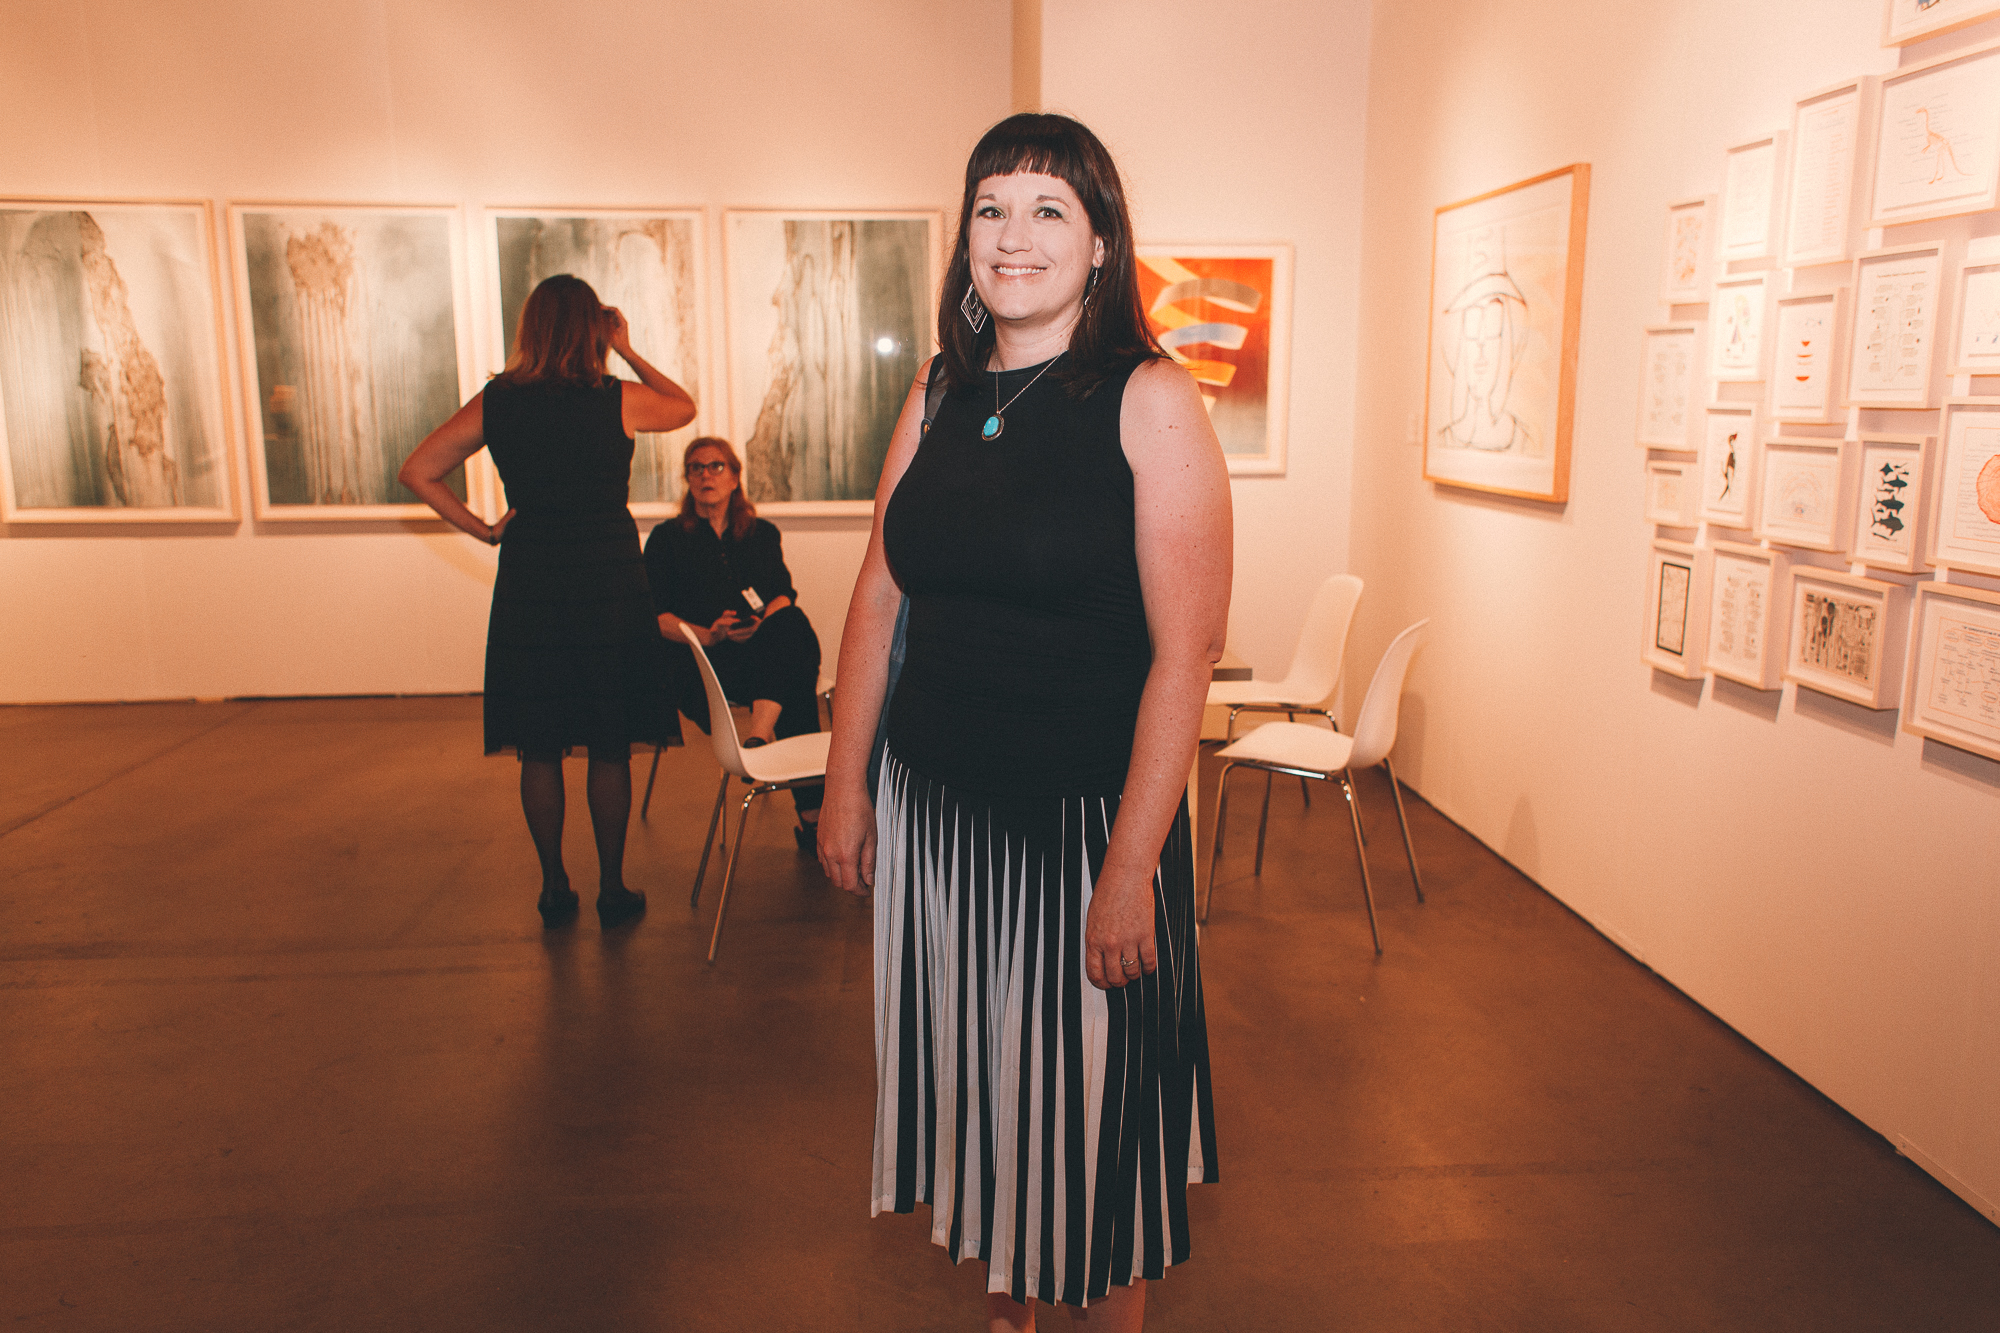 Pleats make another appearance in local artist Renee Robbins's dress.